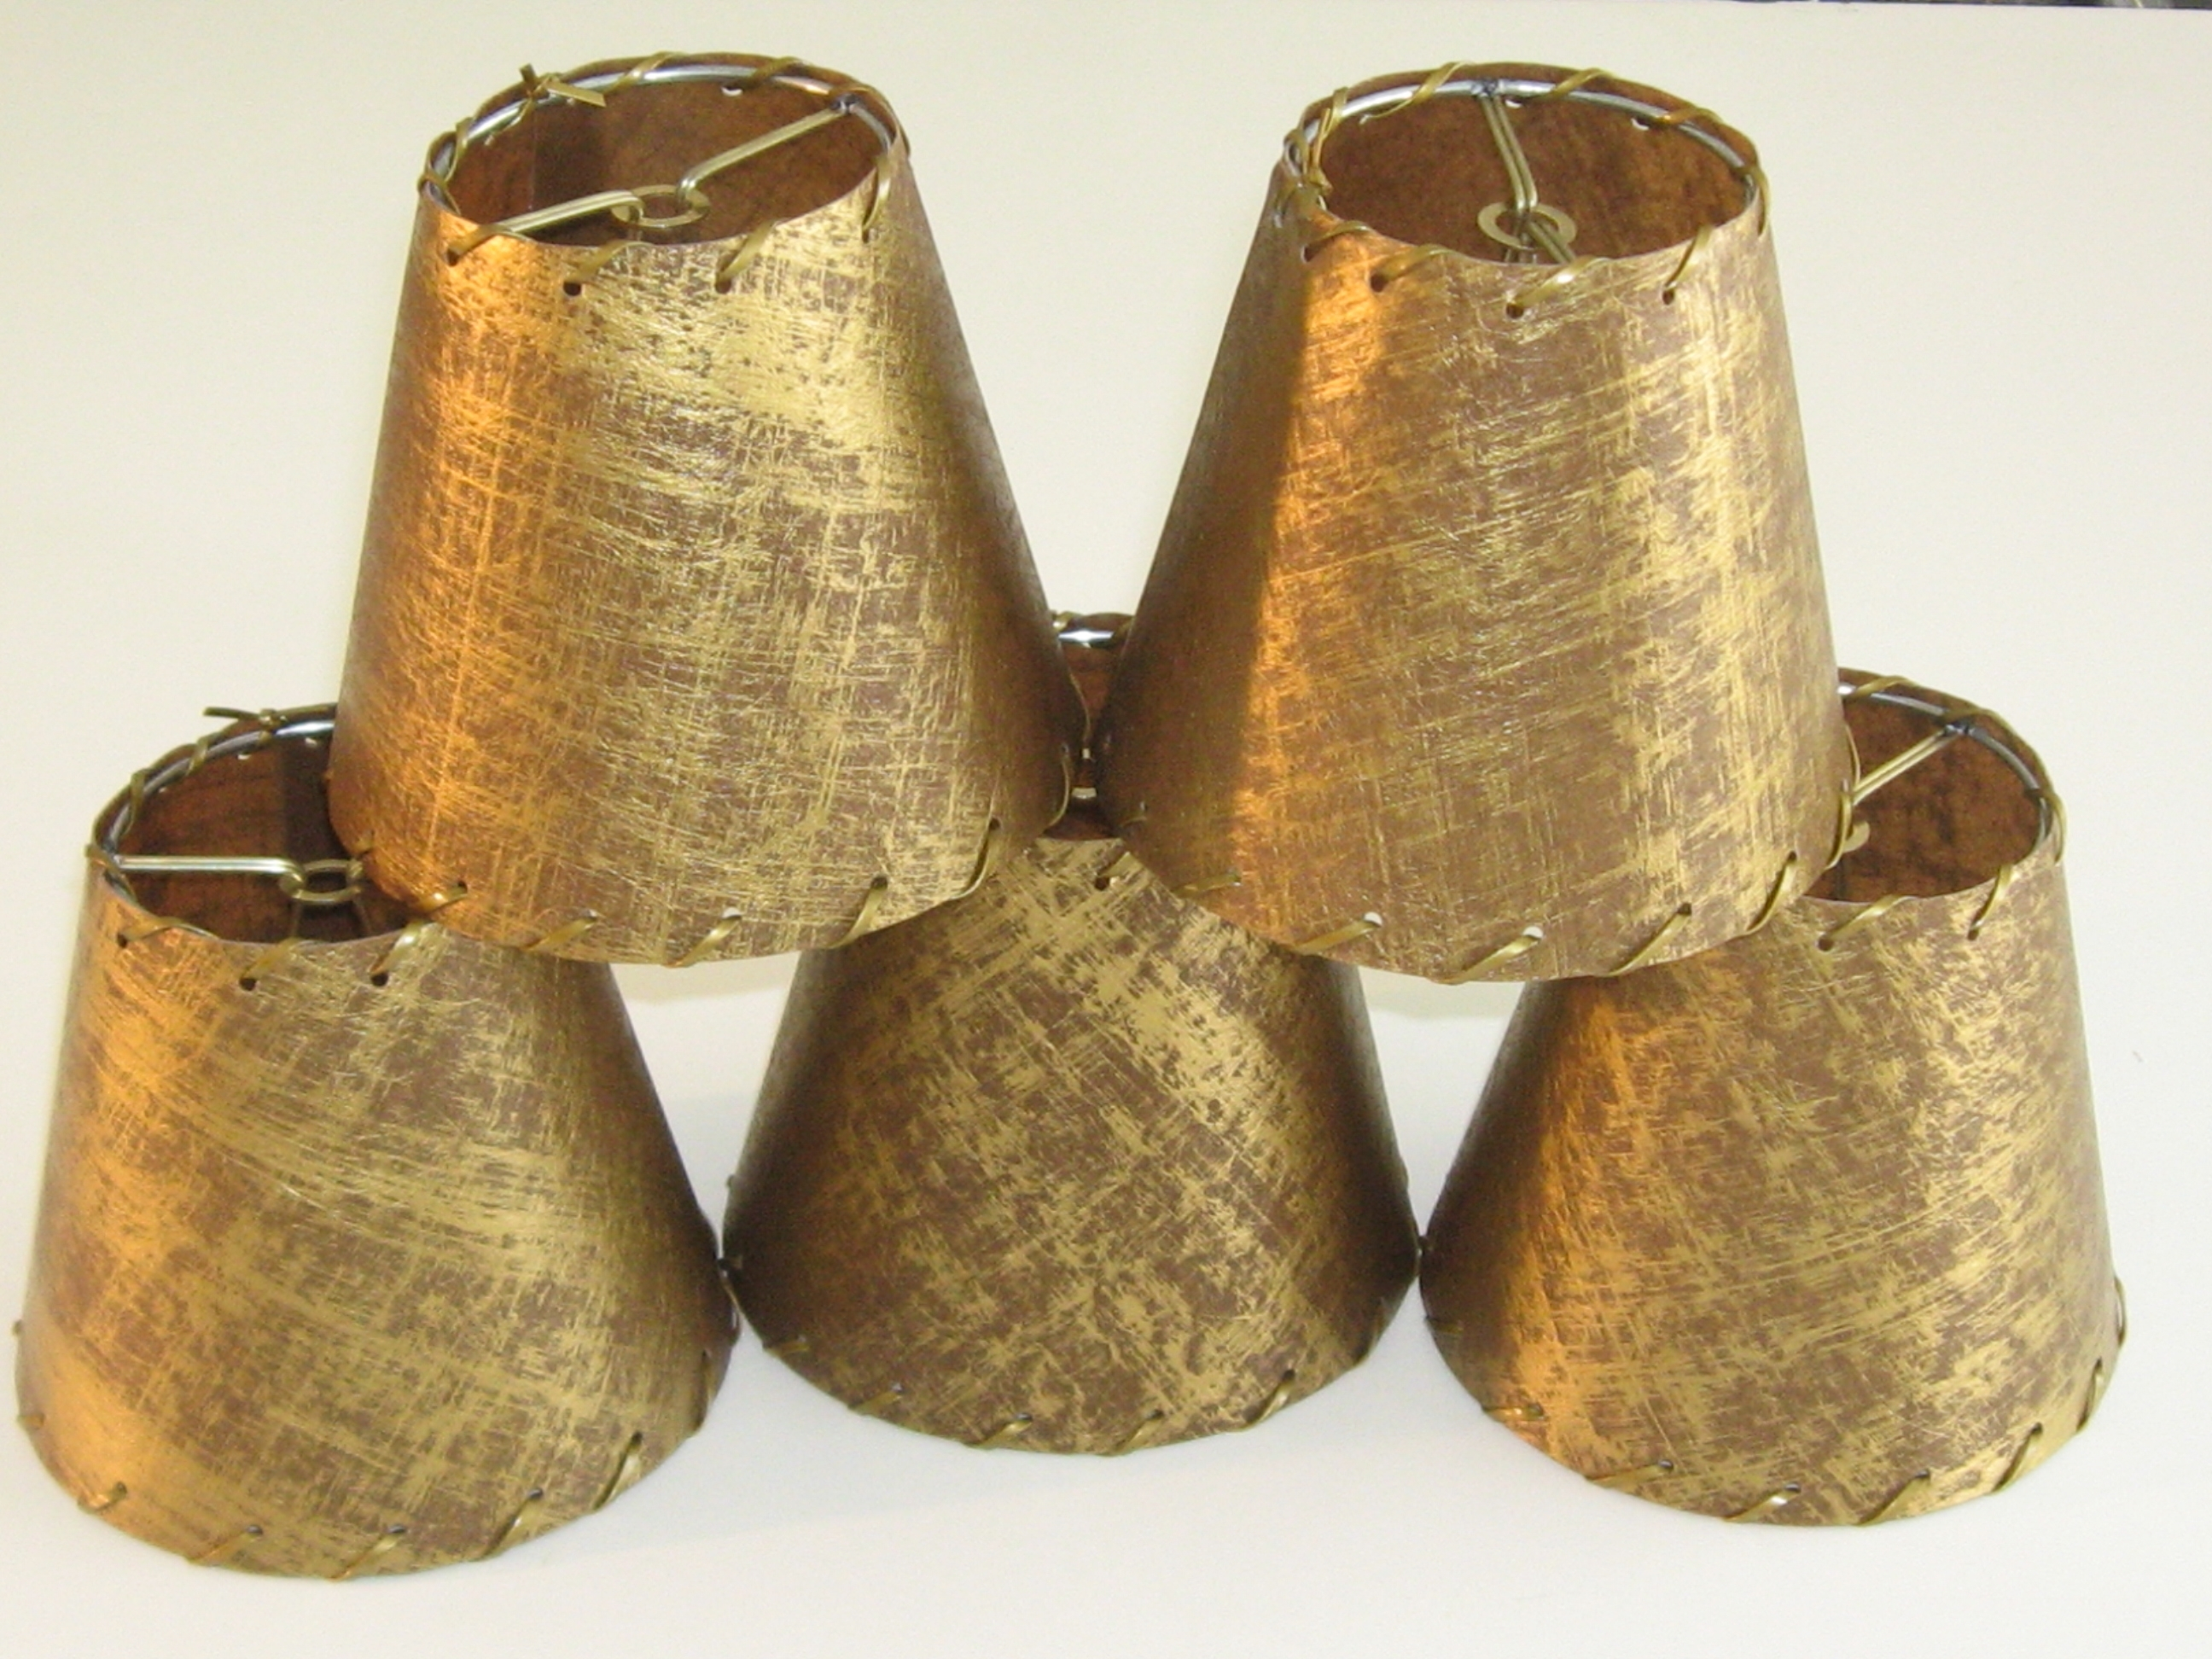 Lampshades For Chandeliers Within Newest Furniture : Small Drum Lamp Shades Chandelier Saving Space Mini (View 14 of 15)